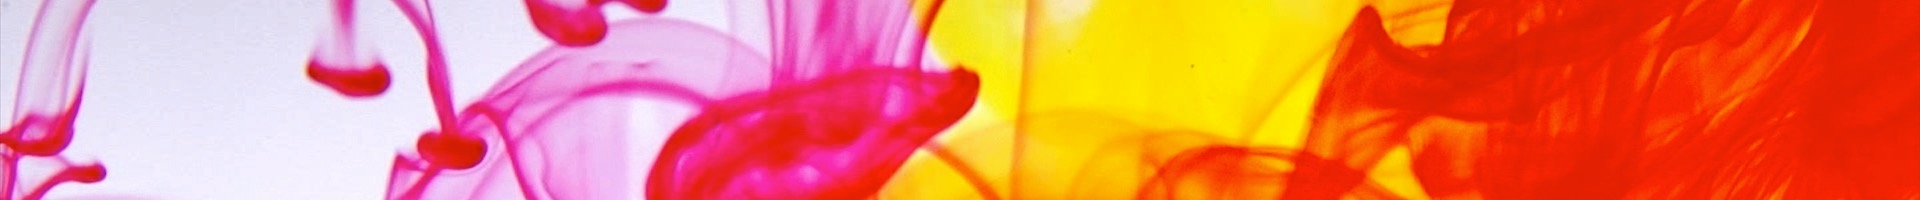 Header TicTac Stampa 6 | tictac.it